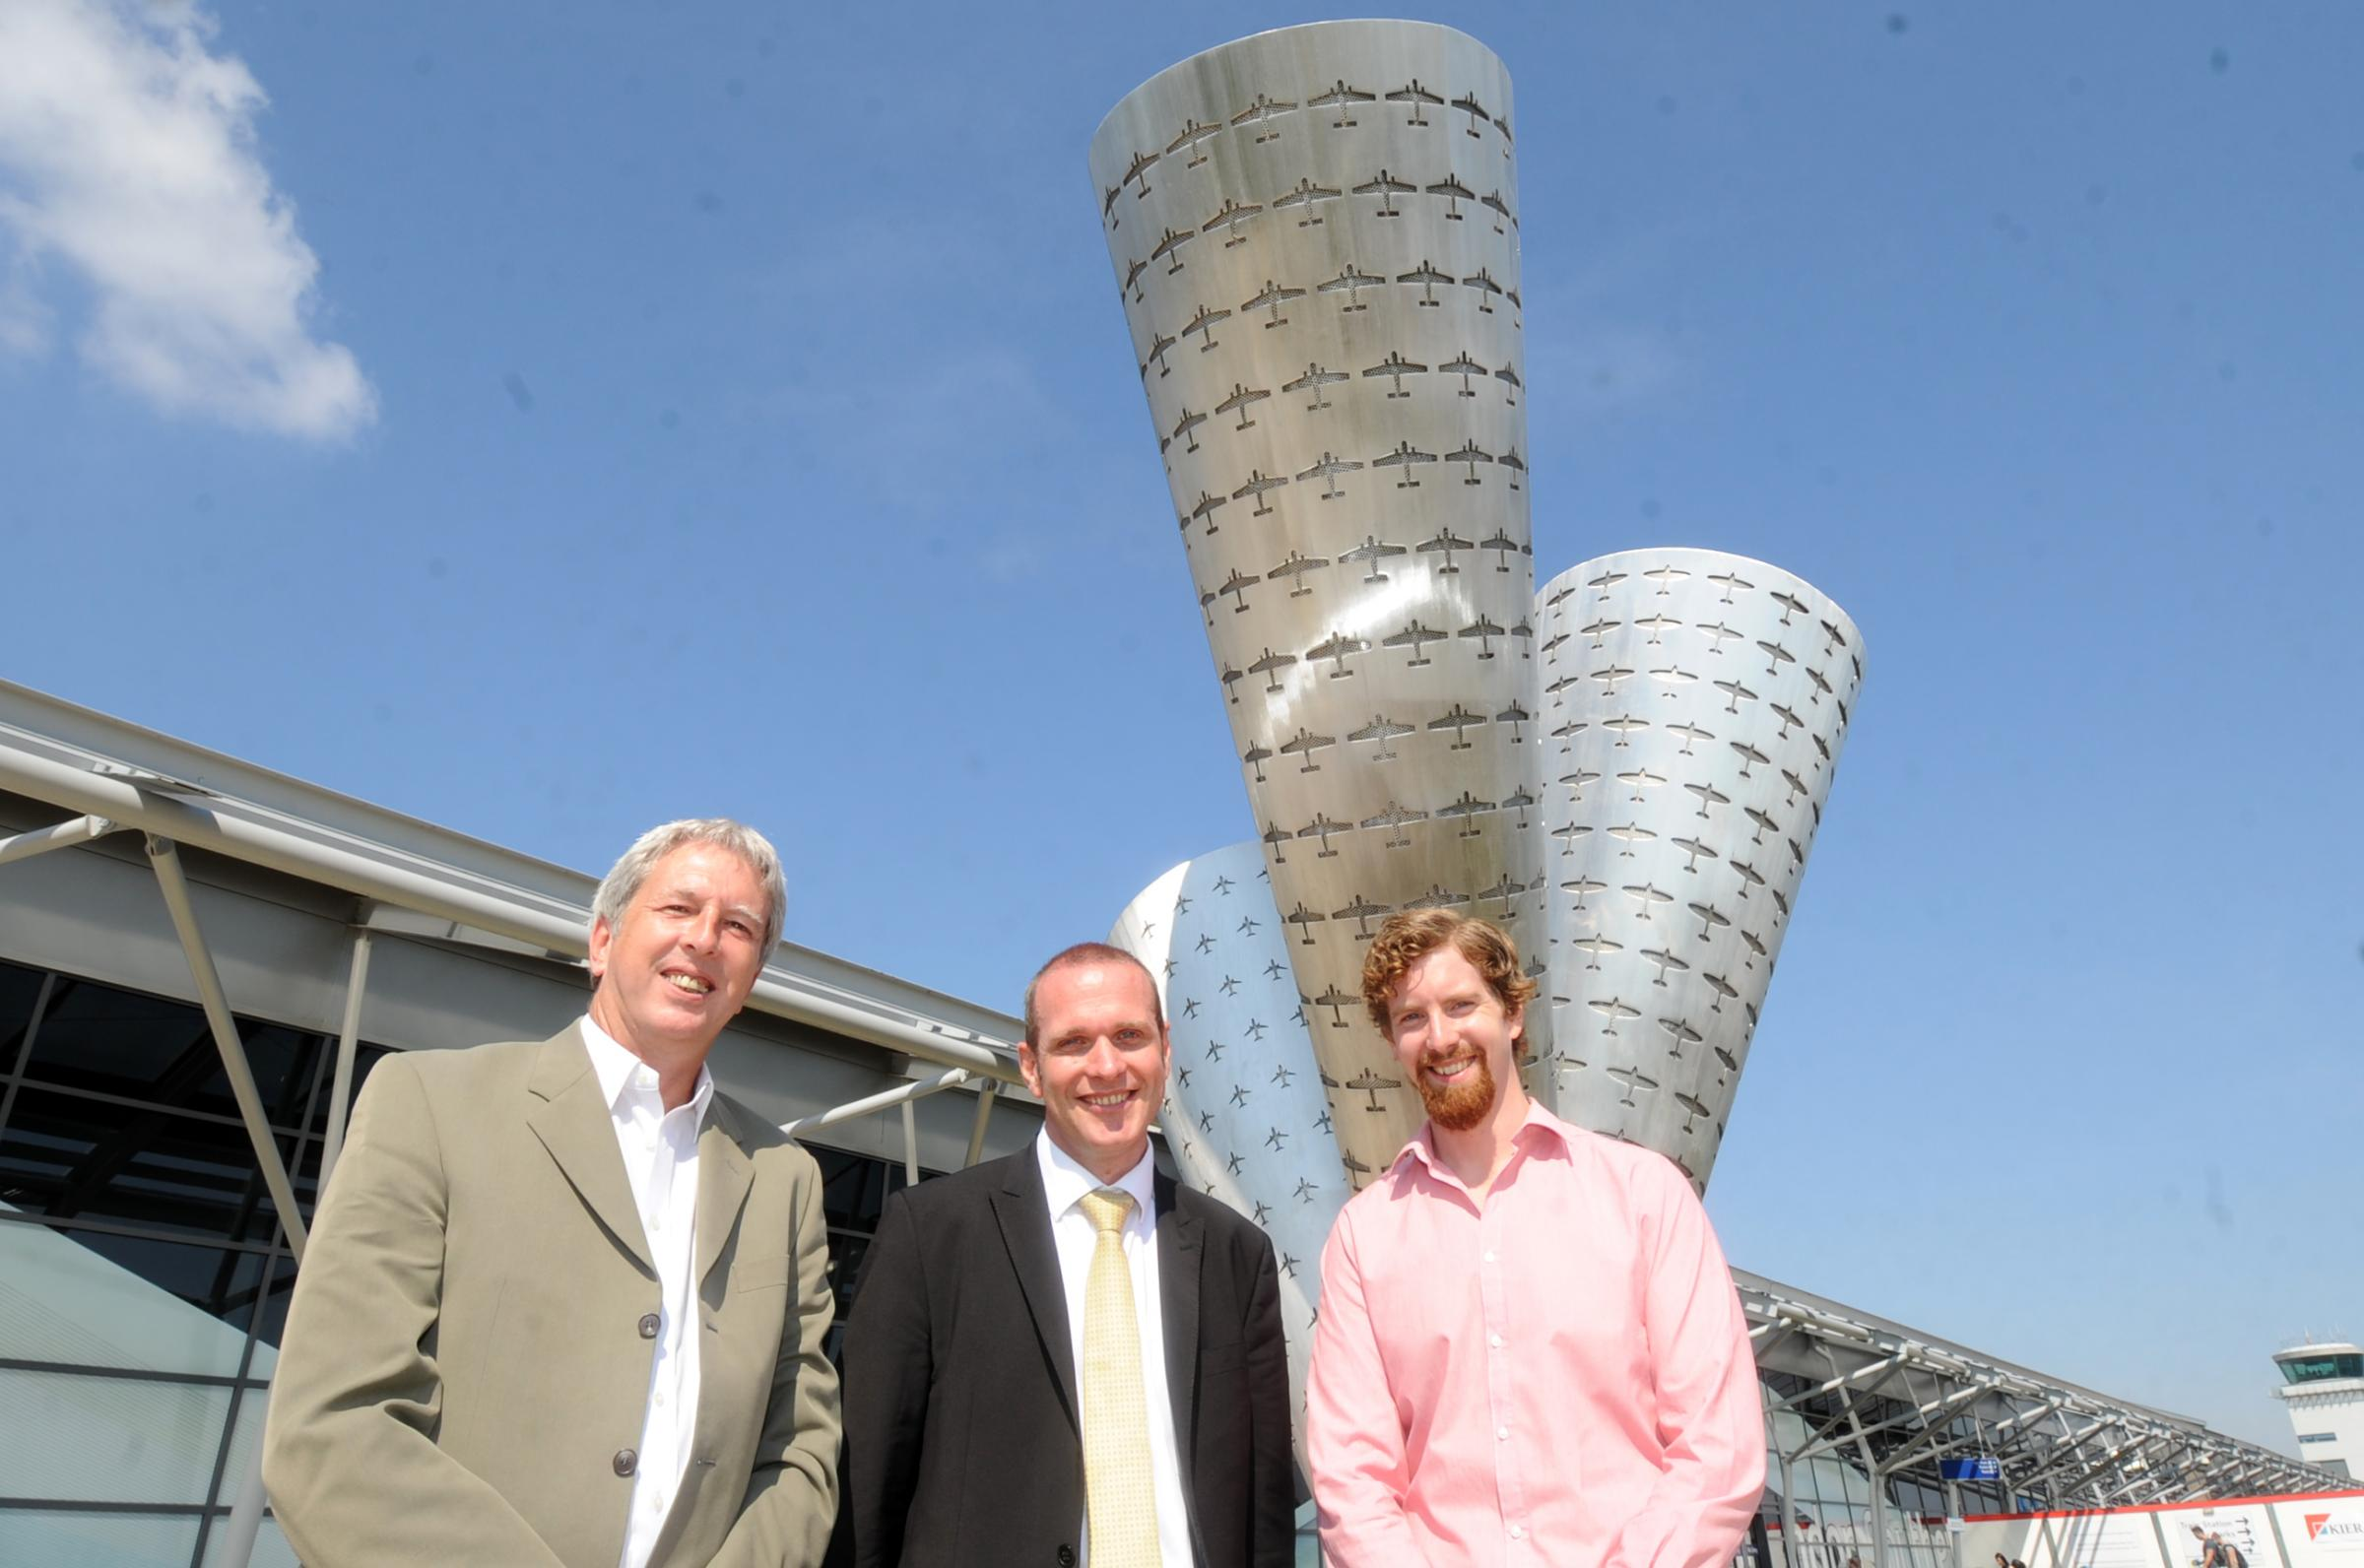 Airport director of operations David Lister, centre, with John Delaney and Tom Curtis